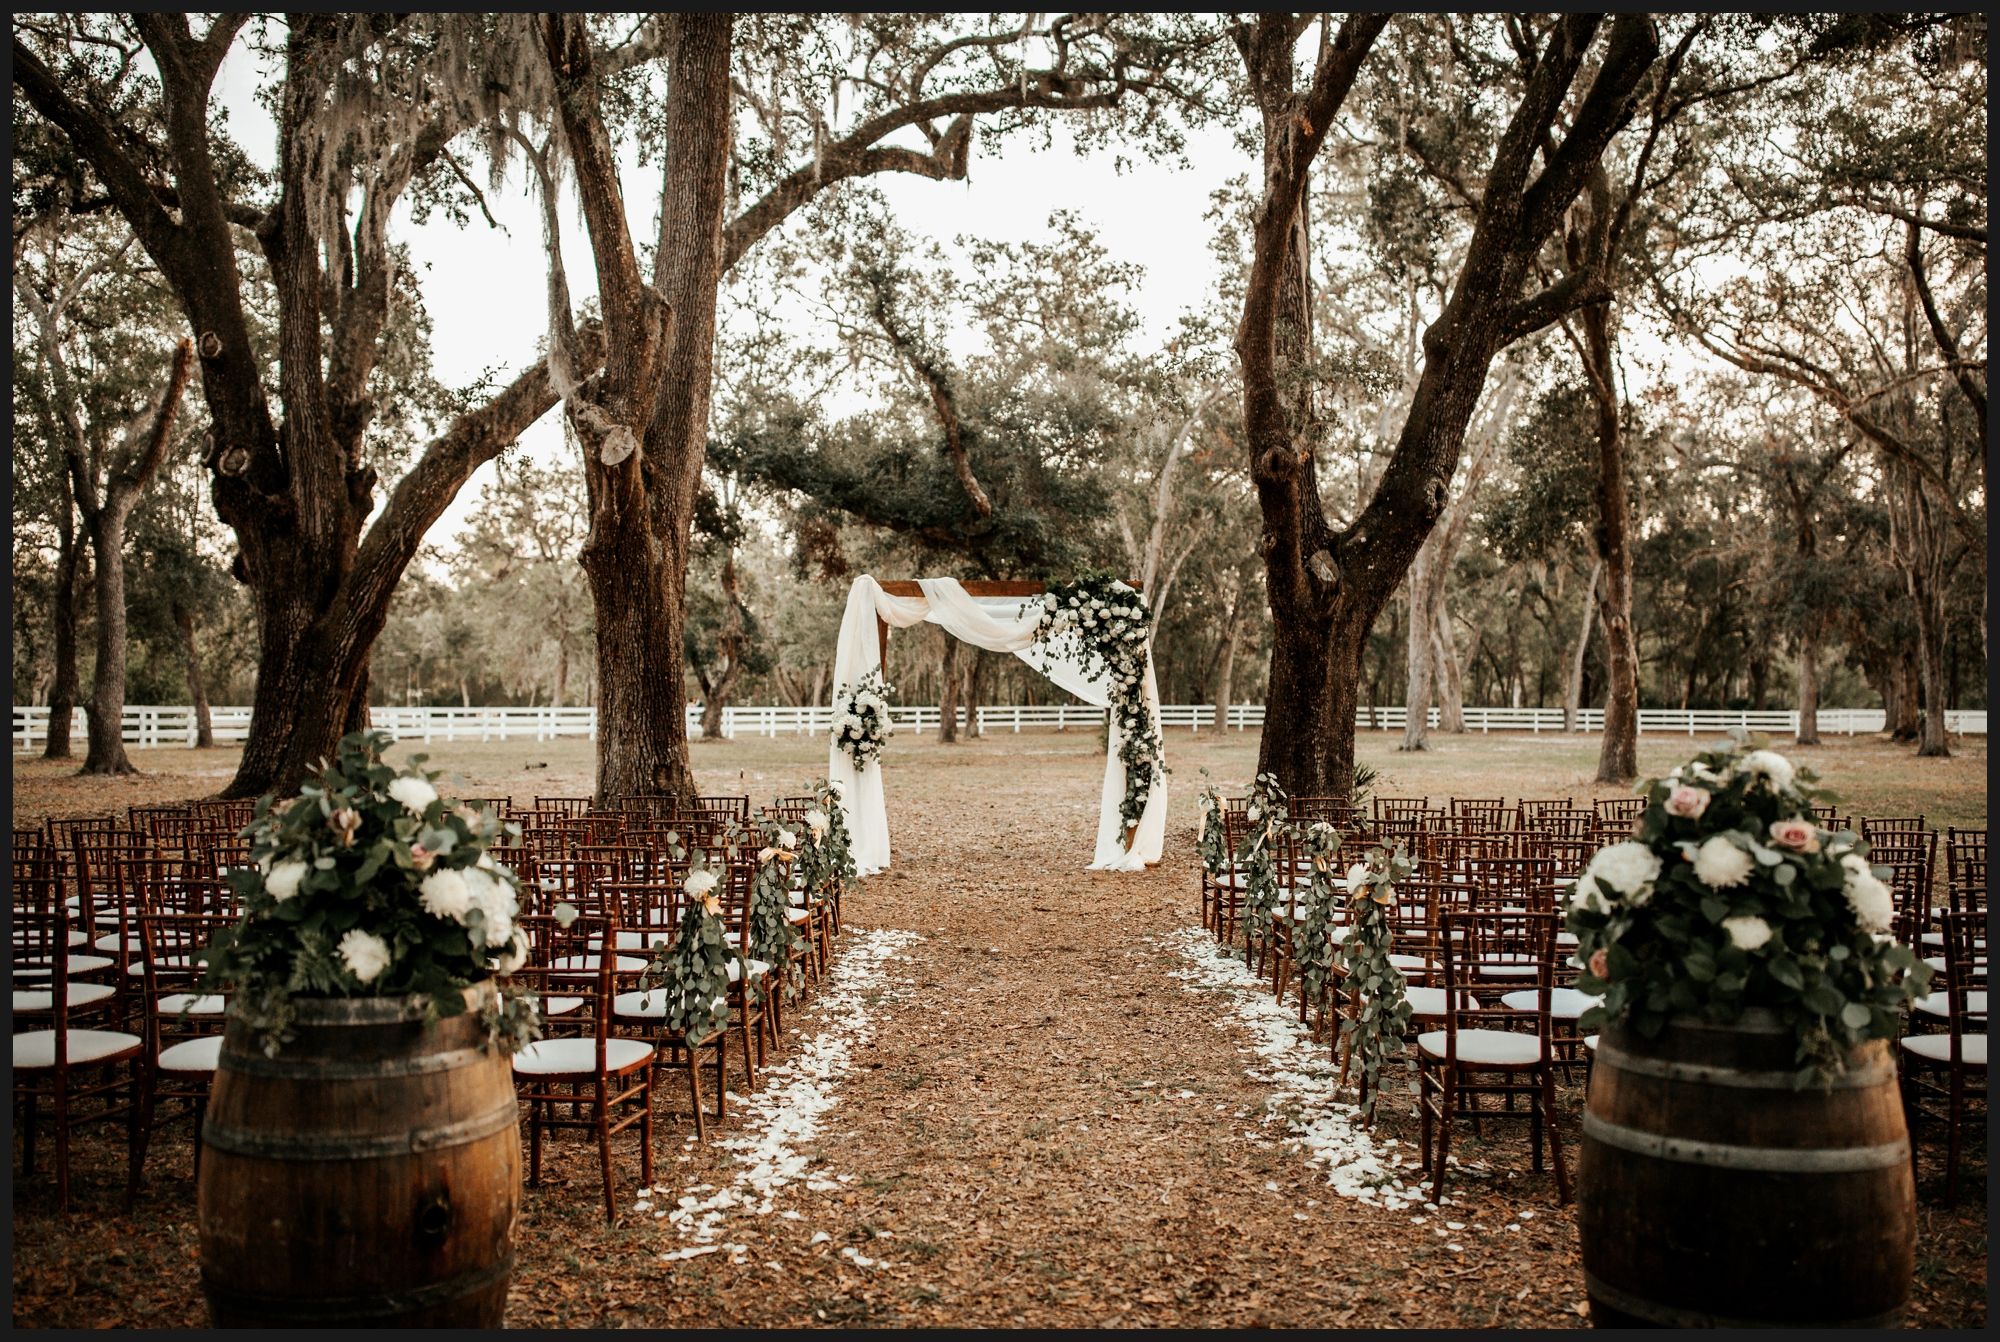 Orlando-Wedding-Photographer-destination-wedding-photographer-florida-wedding-photographer-bohemian-wedding-photographer_1071.jpg